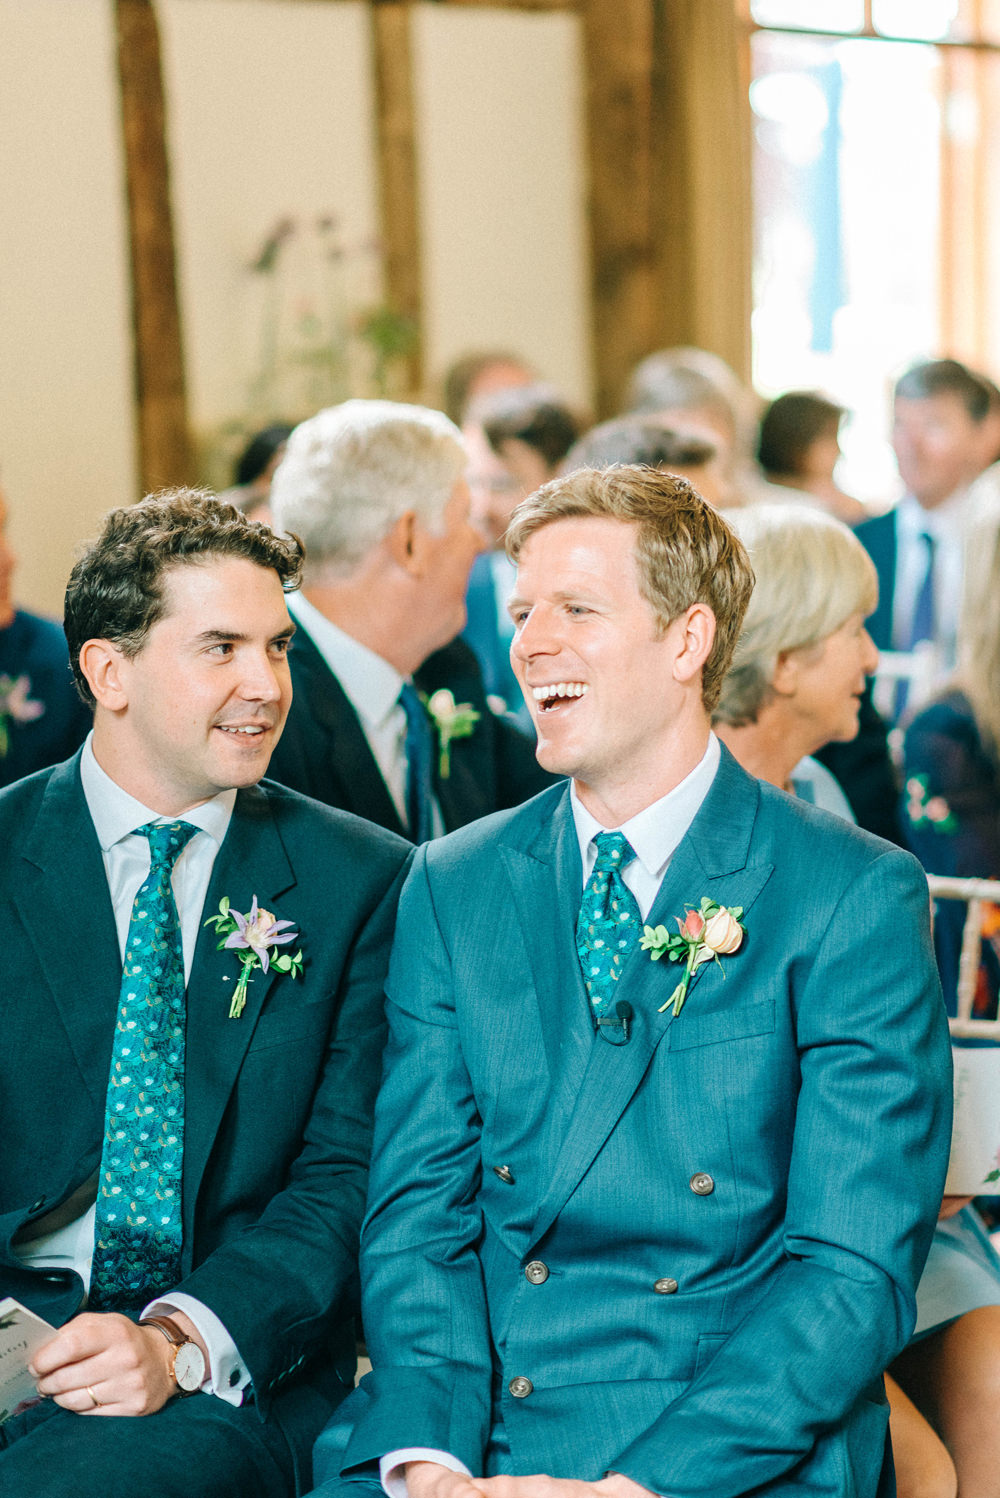 Pastel Spring Wedding at Loseley Park by Sarah-Jane Ethan Photography